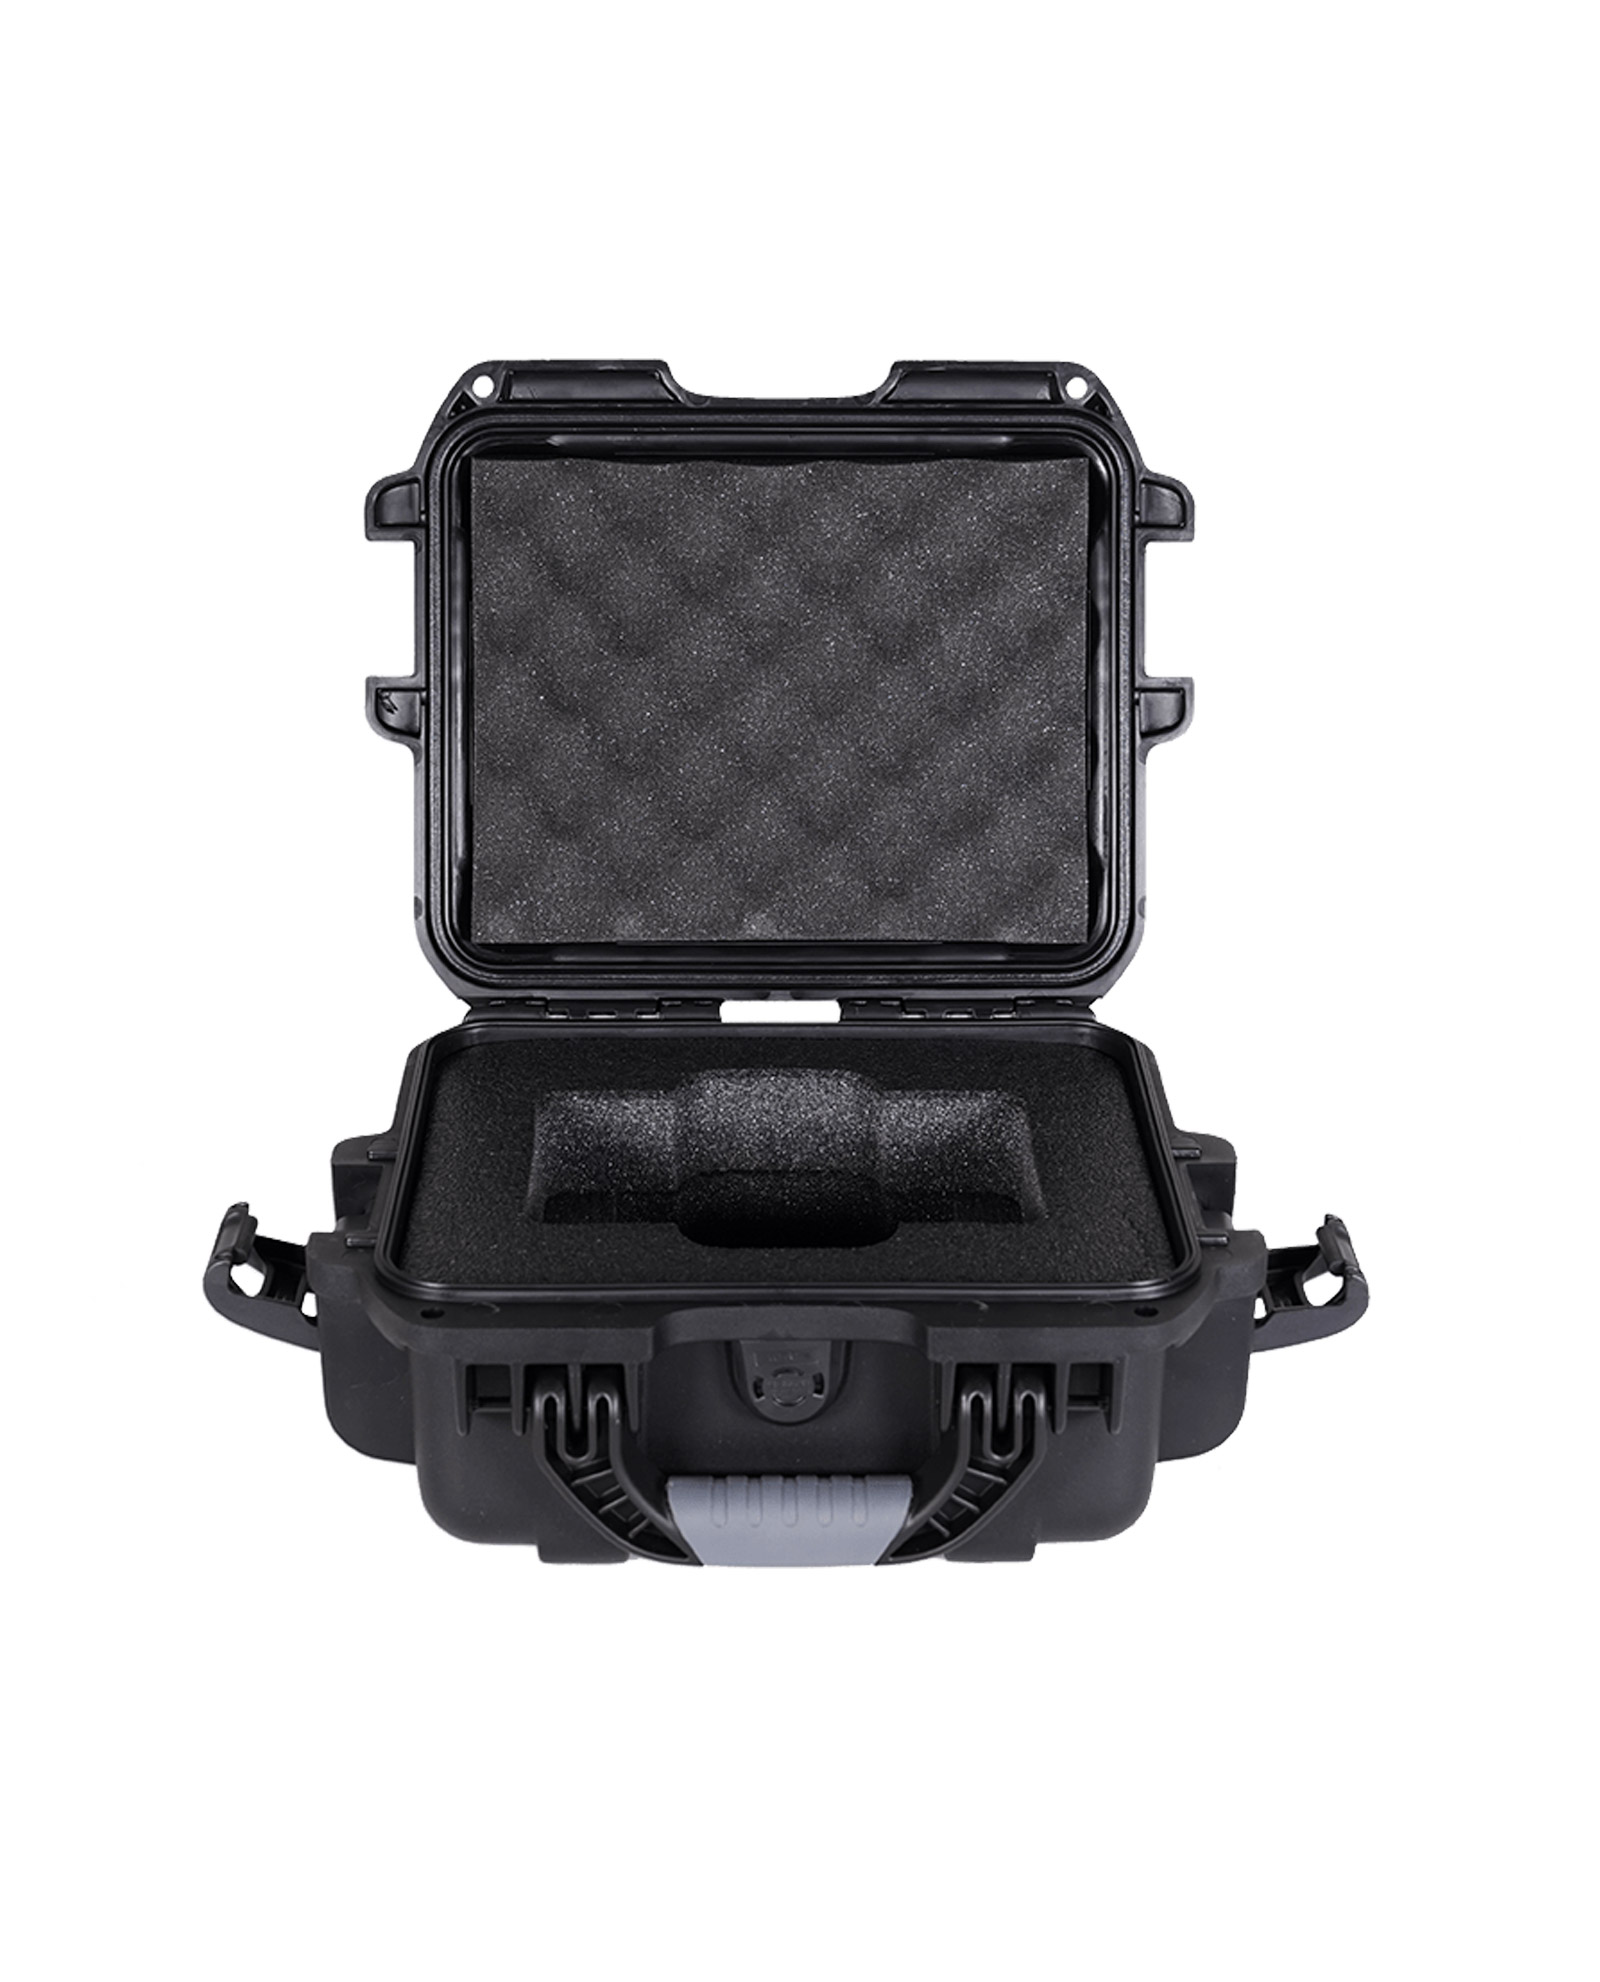 Theatrixx Xvision 1 Unit Carrying Case 1